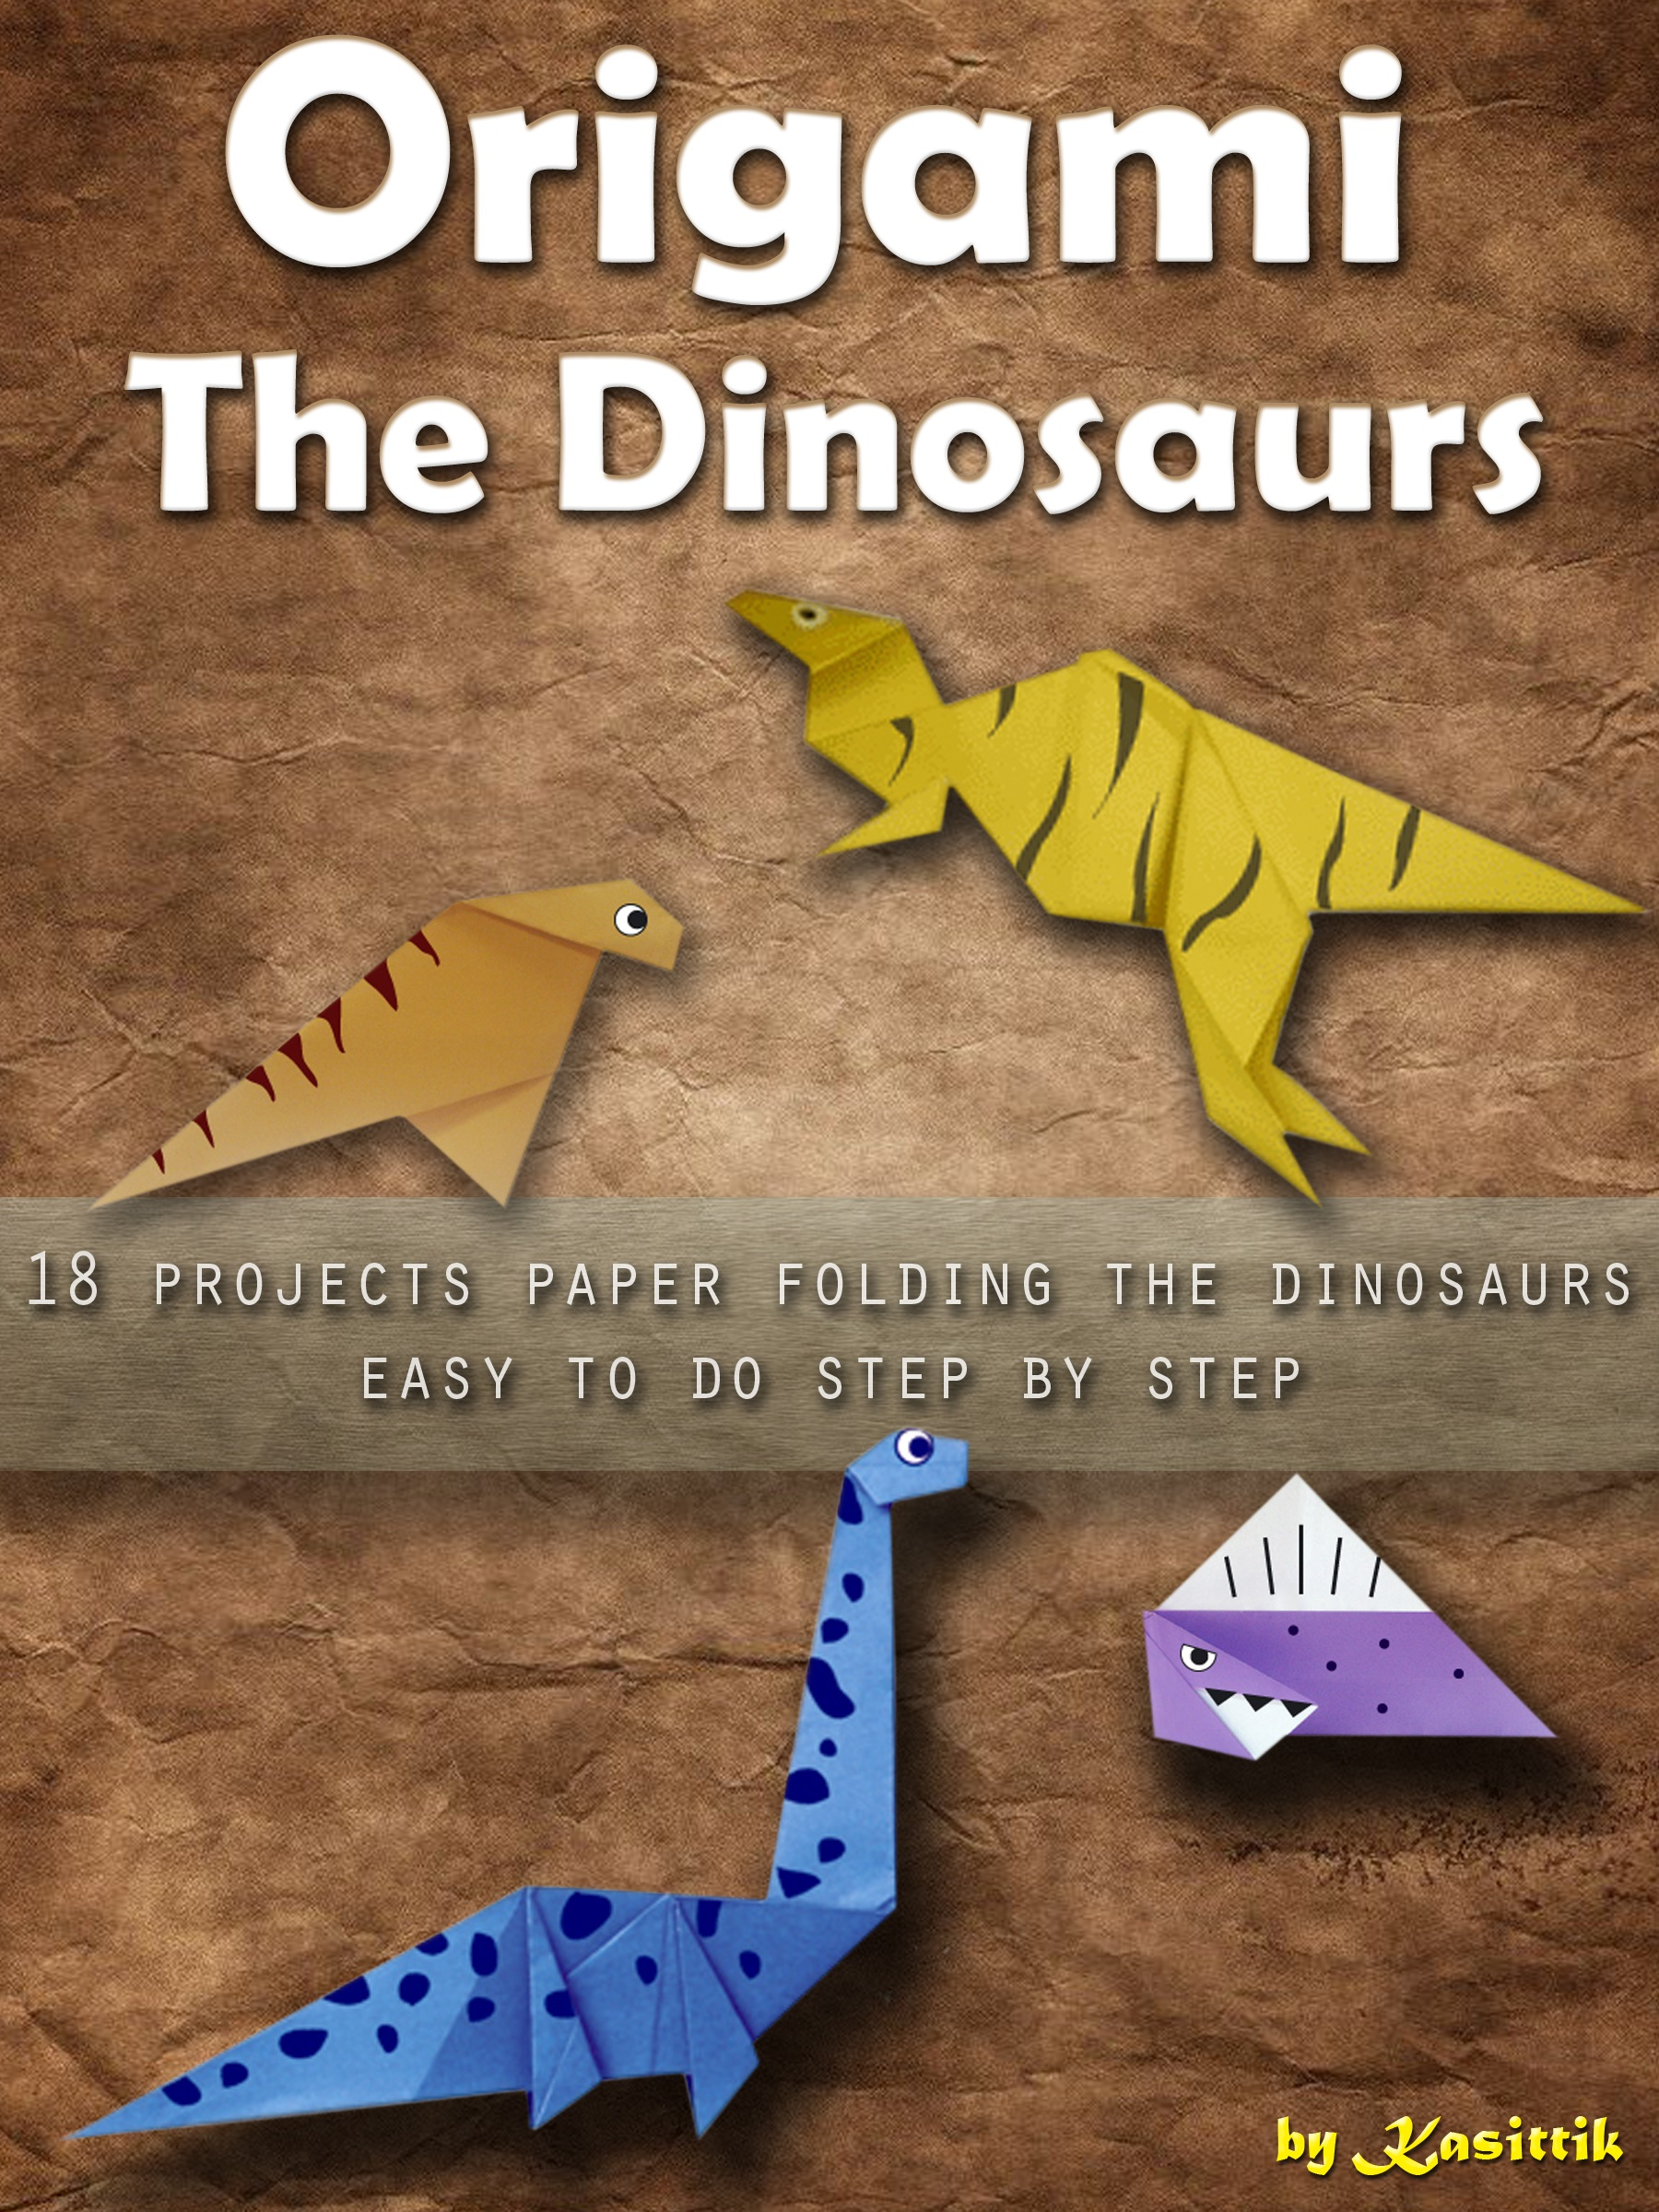 Fun Origami for Children: Dino!: 12 daring dinosaurs to fold: Ono ... | 2400x1800